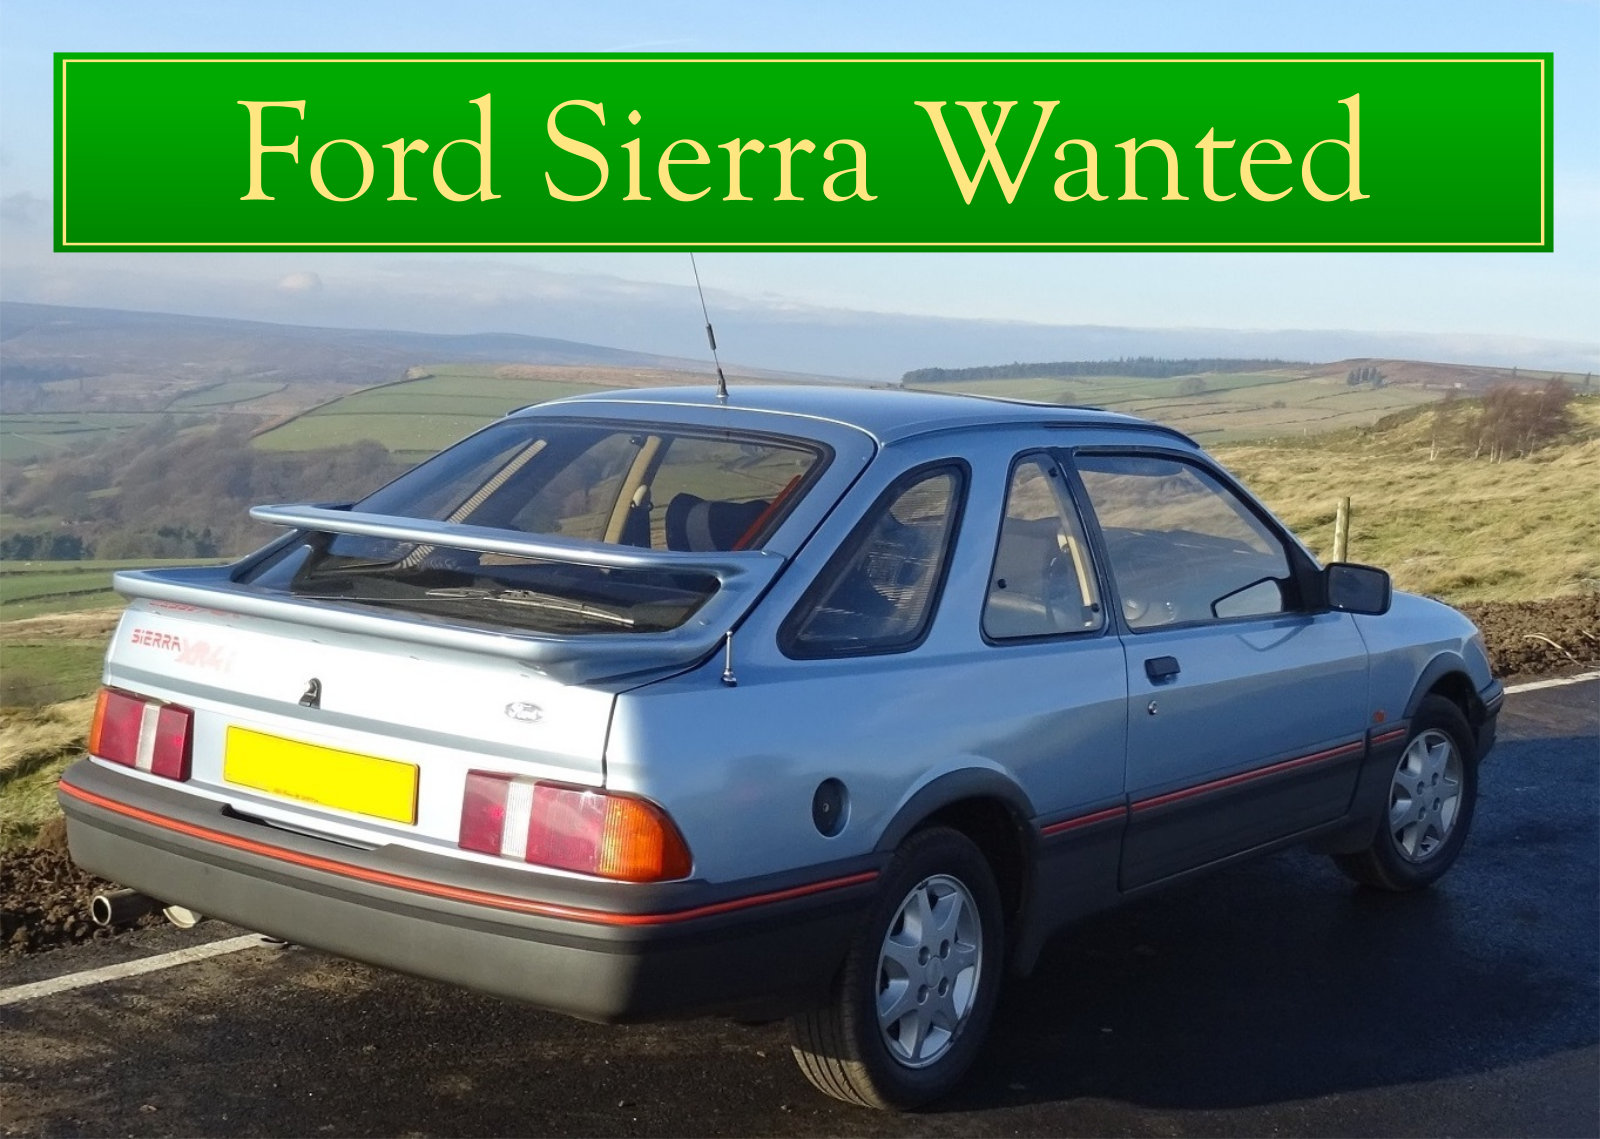 FORD COSWORTH WANTED, CLASSIC CARS WANTED, IMMEDIATE PAYMENT Wanted (picture 4 of 6)